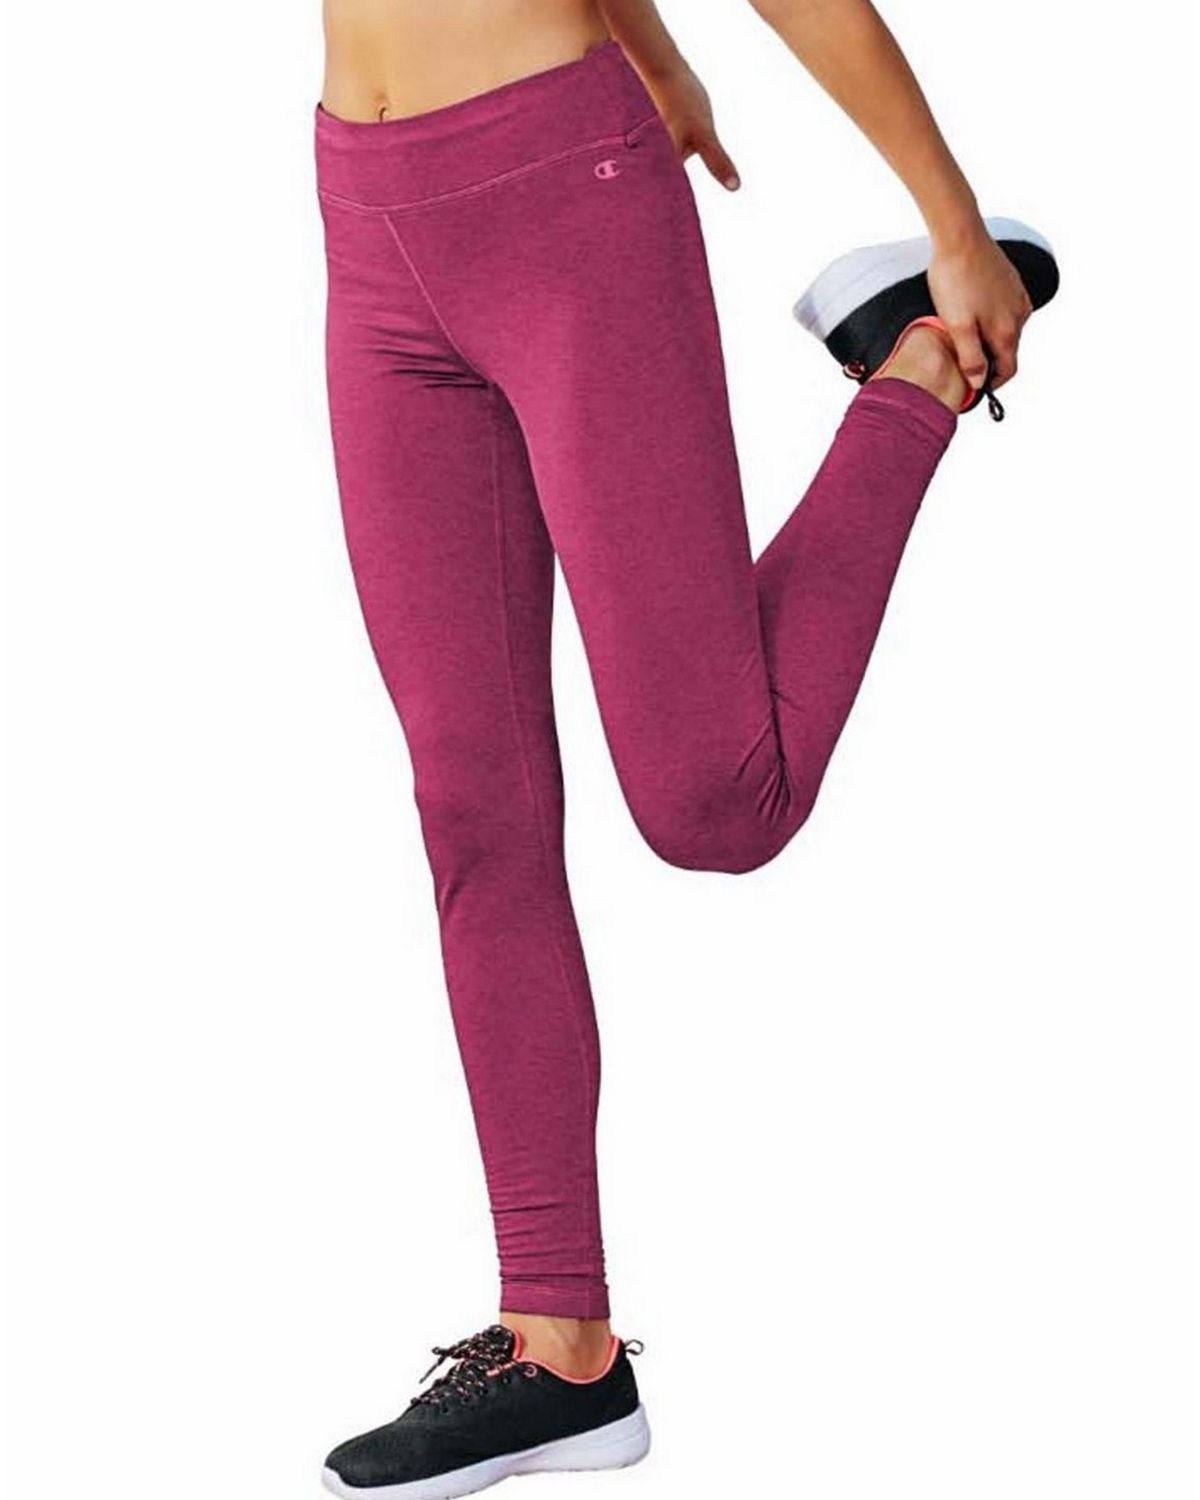 Champion M9518 Tech Fleece Tights - Berry Delight Heather - XL M9518